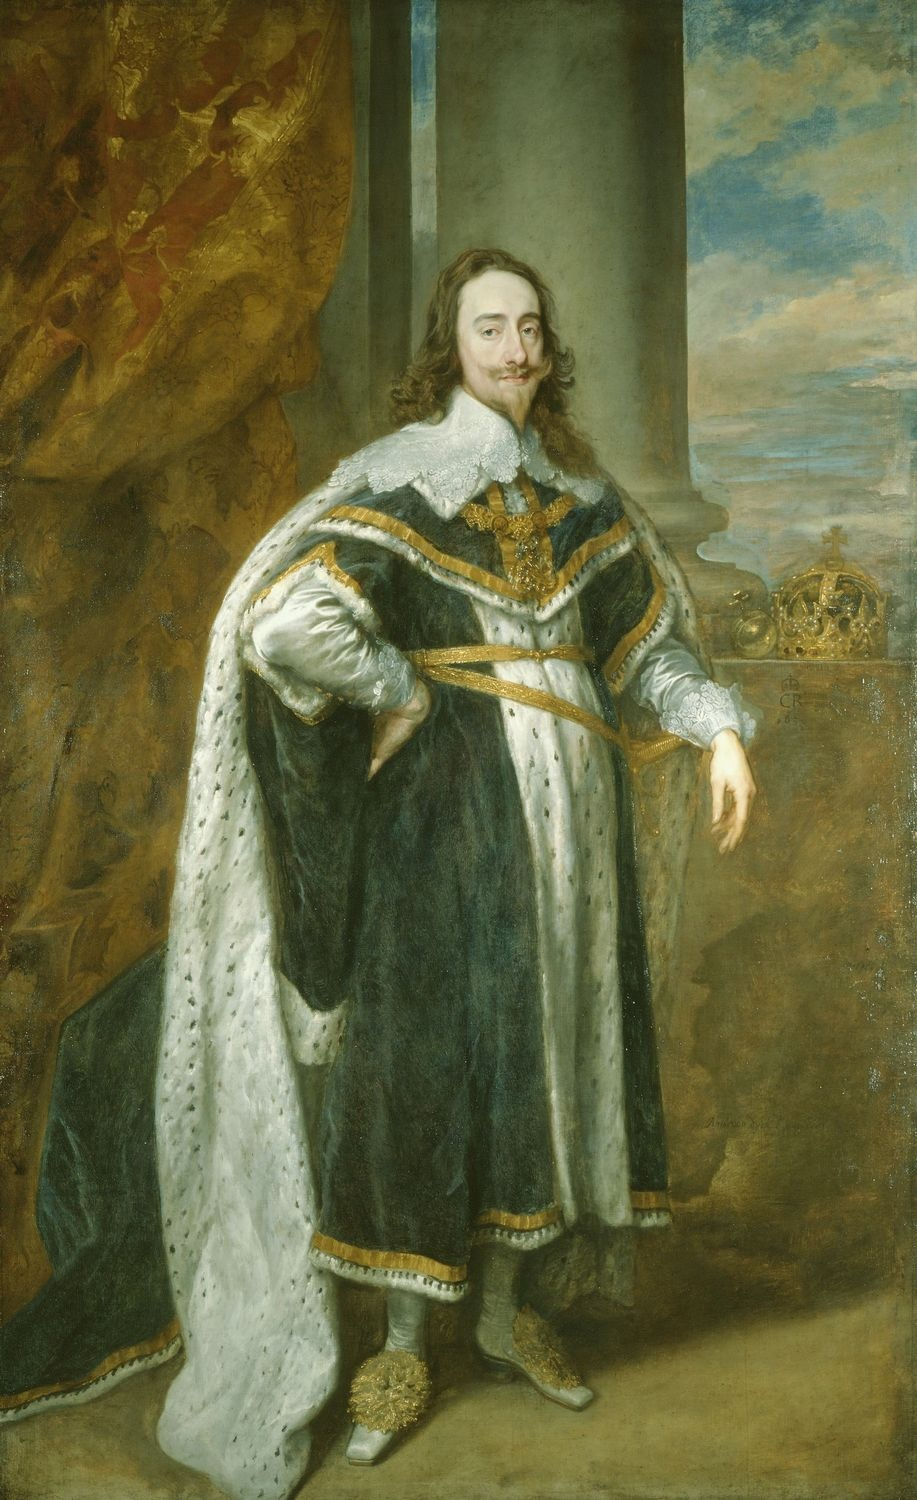 King Charles I by Anthony van Dyck. 1636.